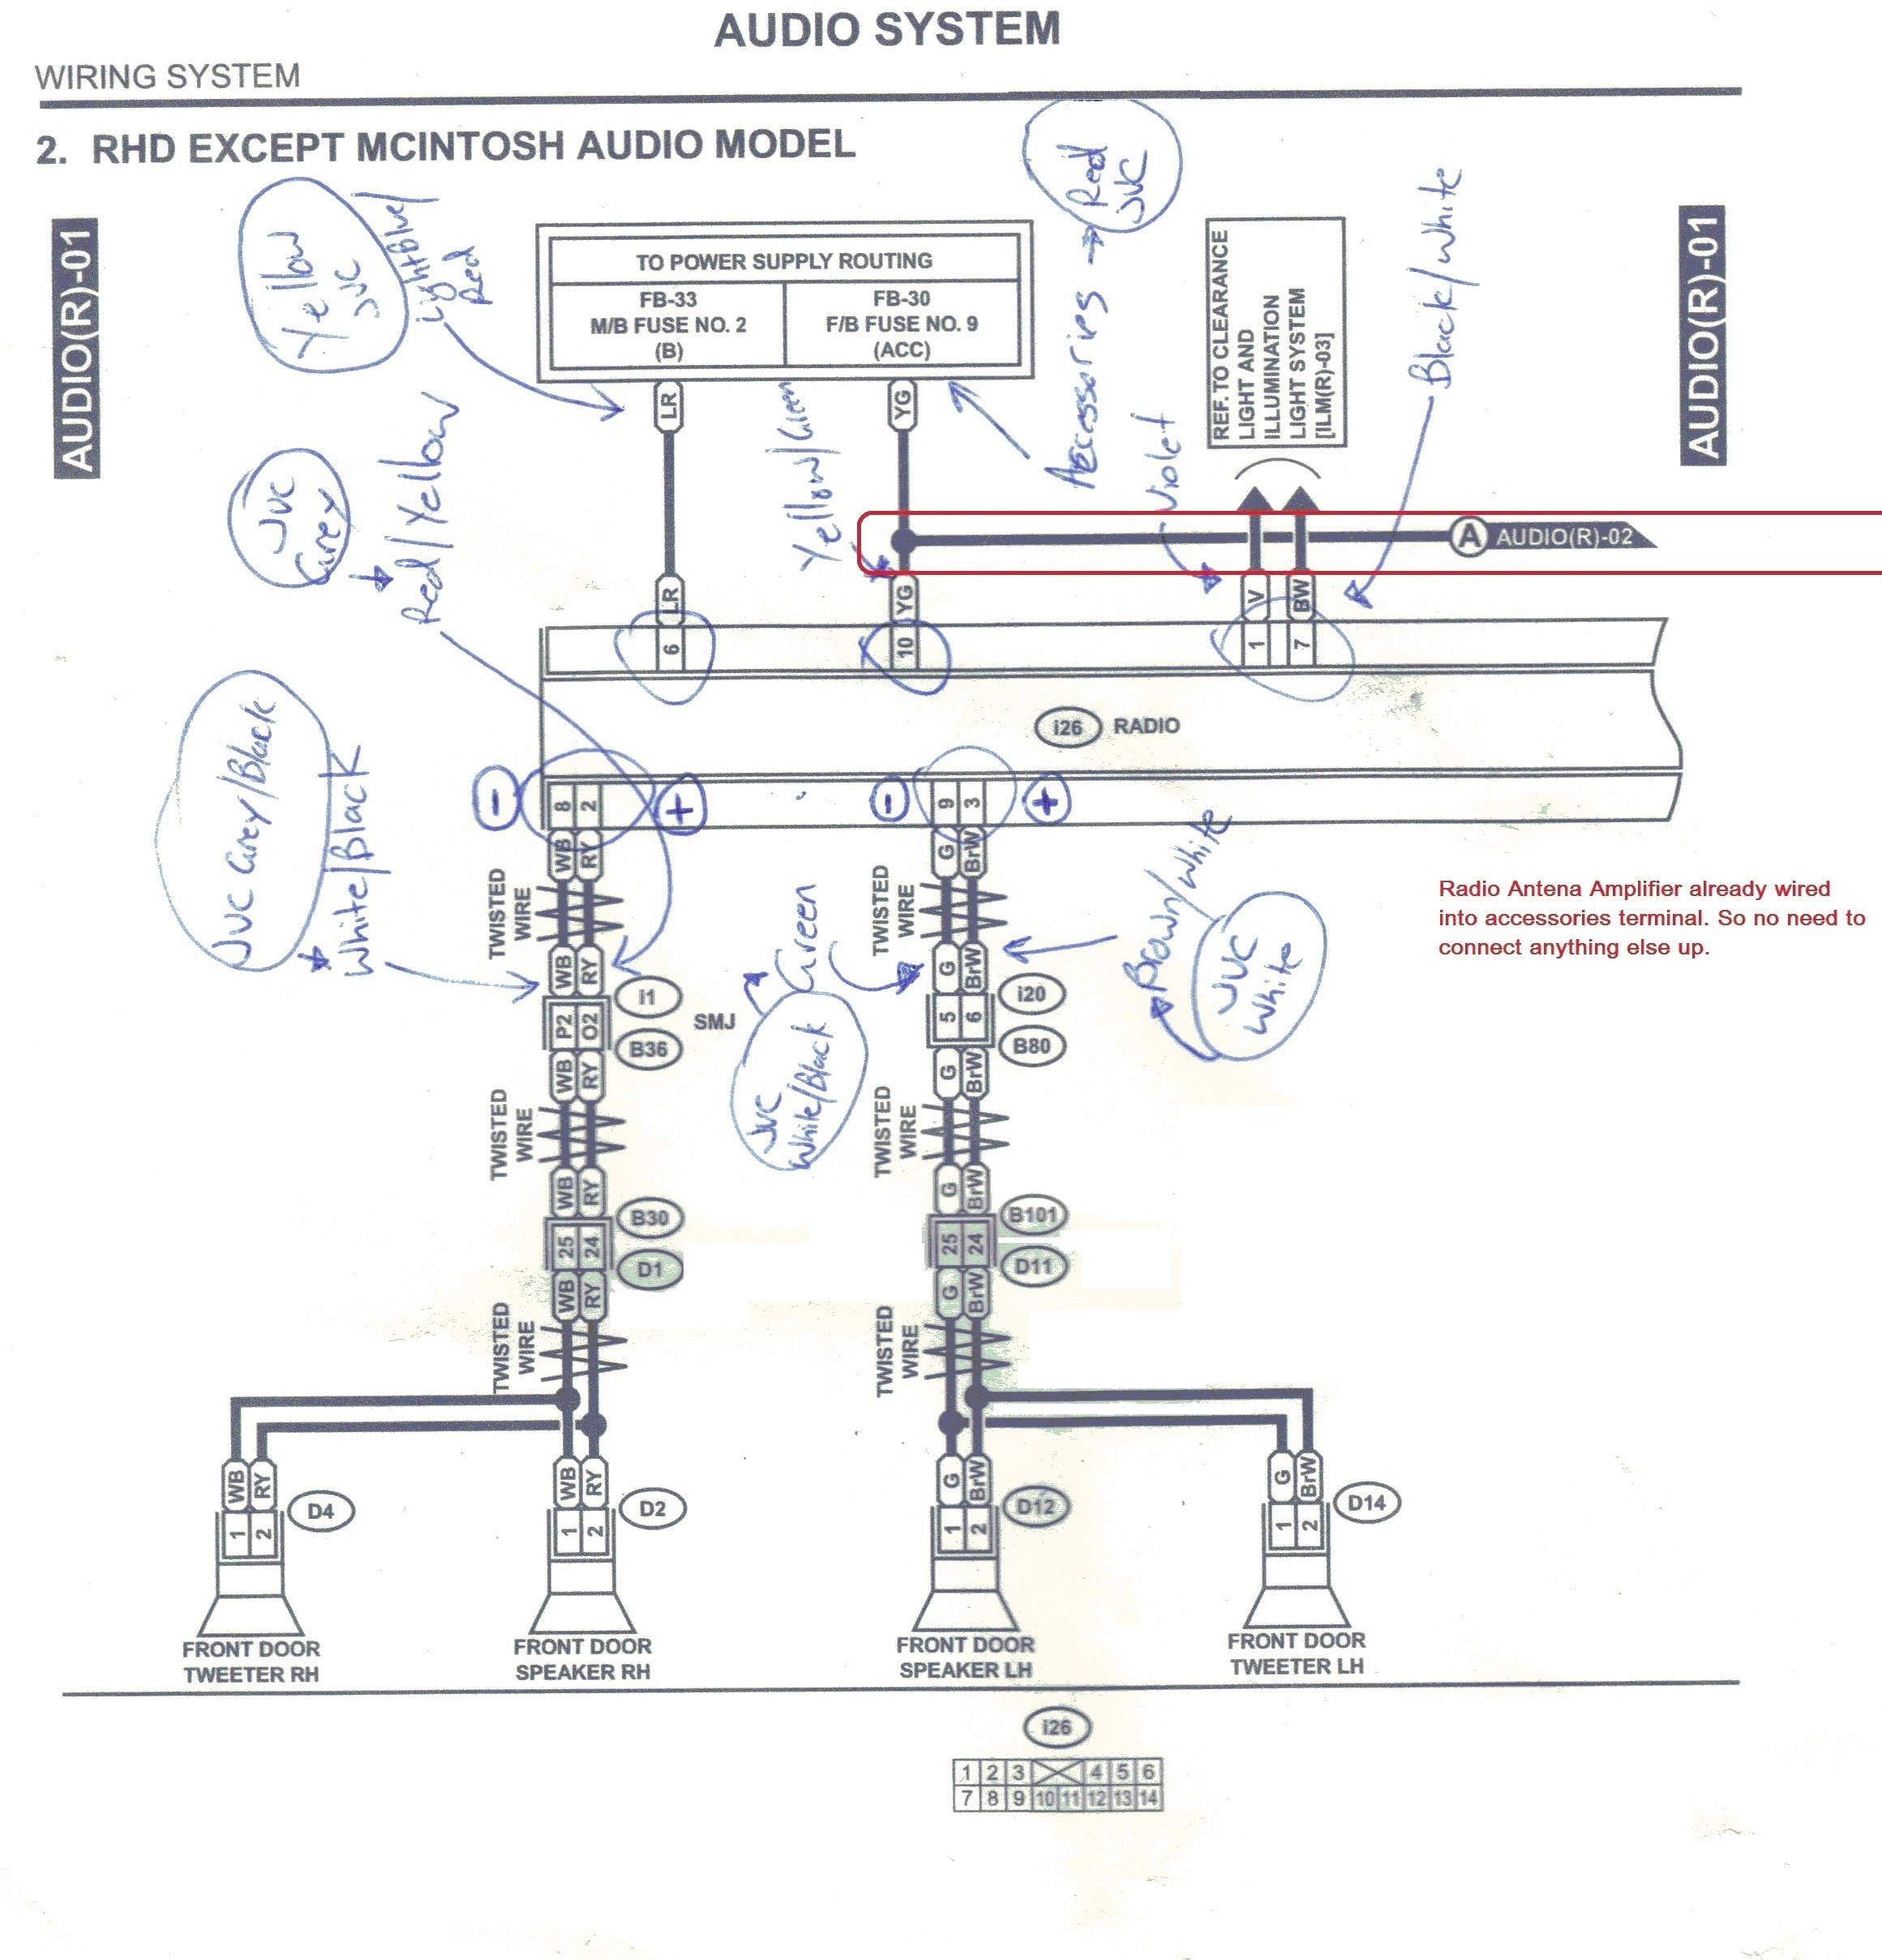 23790d1338023185 poor radio reception aftermarket hu radio schematic 01 2016 wrx wiring diagram 2016 wrx sti limited \u2022 wiring diagrams j 1998 Subaru Legacy Wiring-Diagram at aneh.co